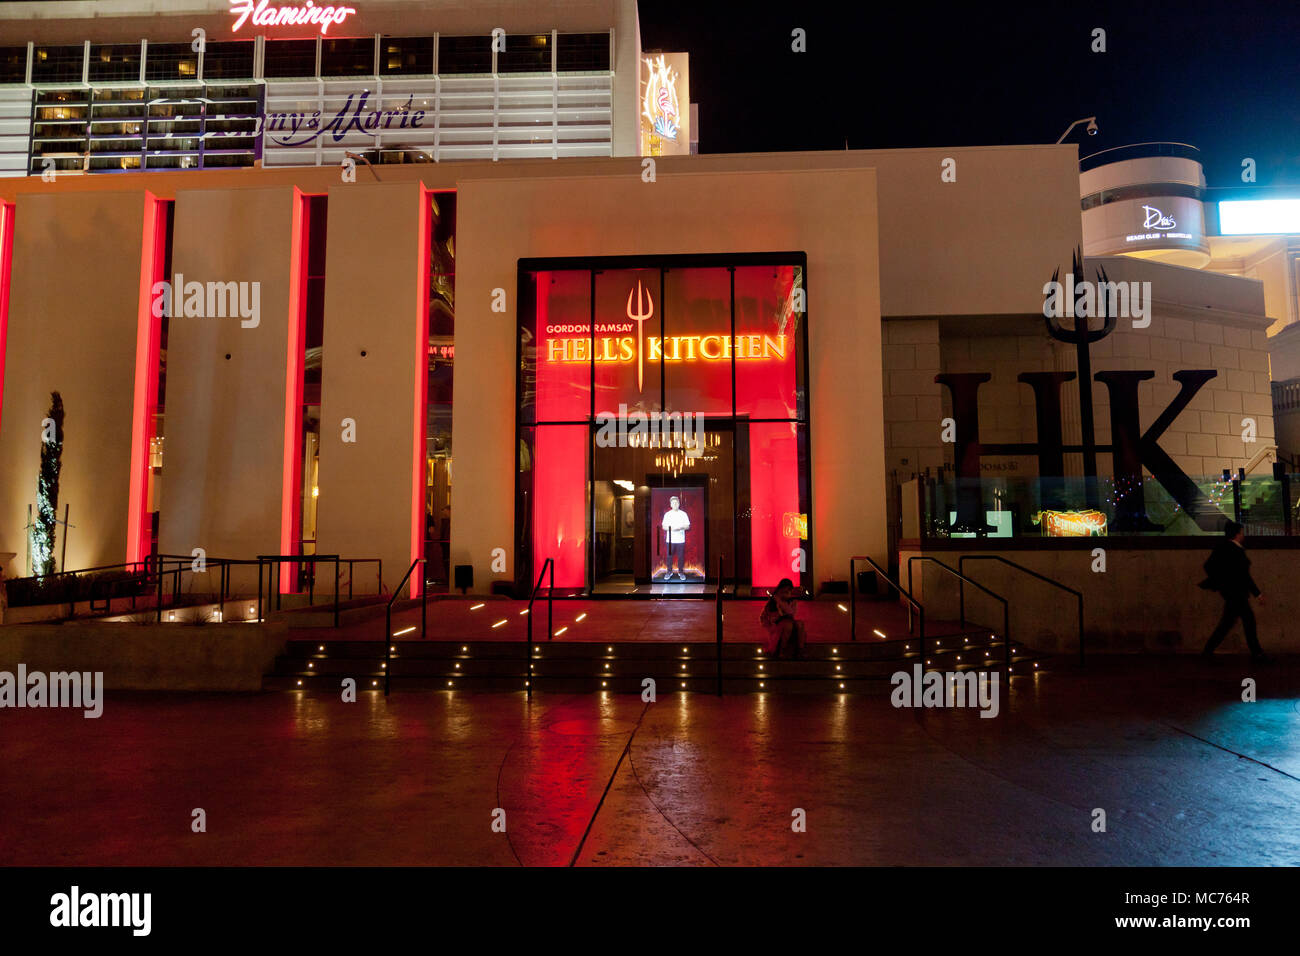 hells kitchen restaurant by gordon ramsay in las vegas nevada - Hells Kitchen Restaurant